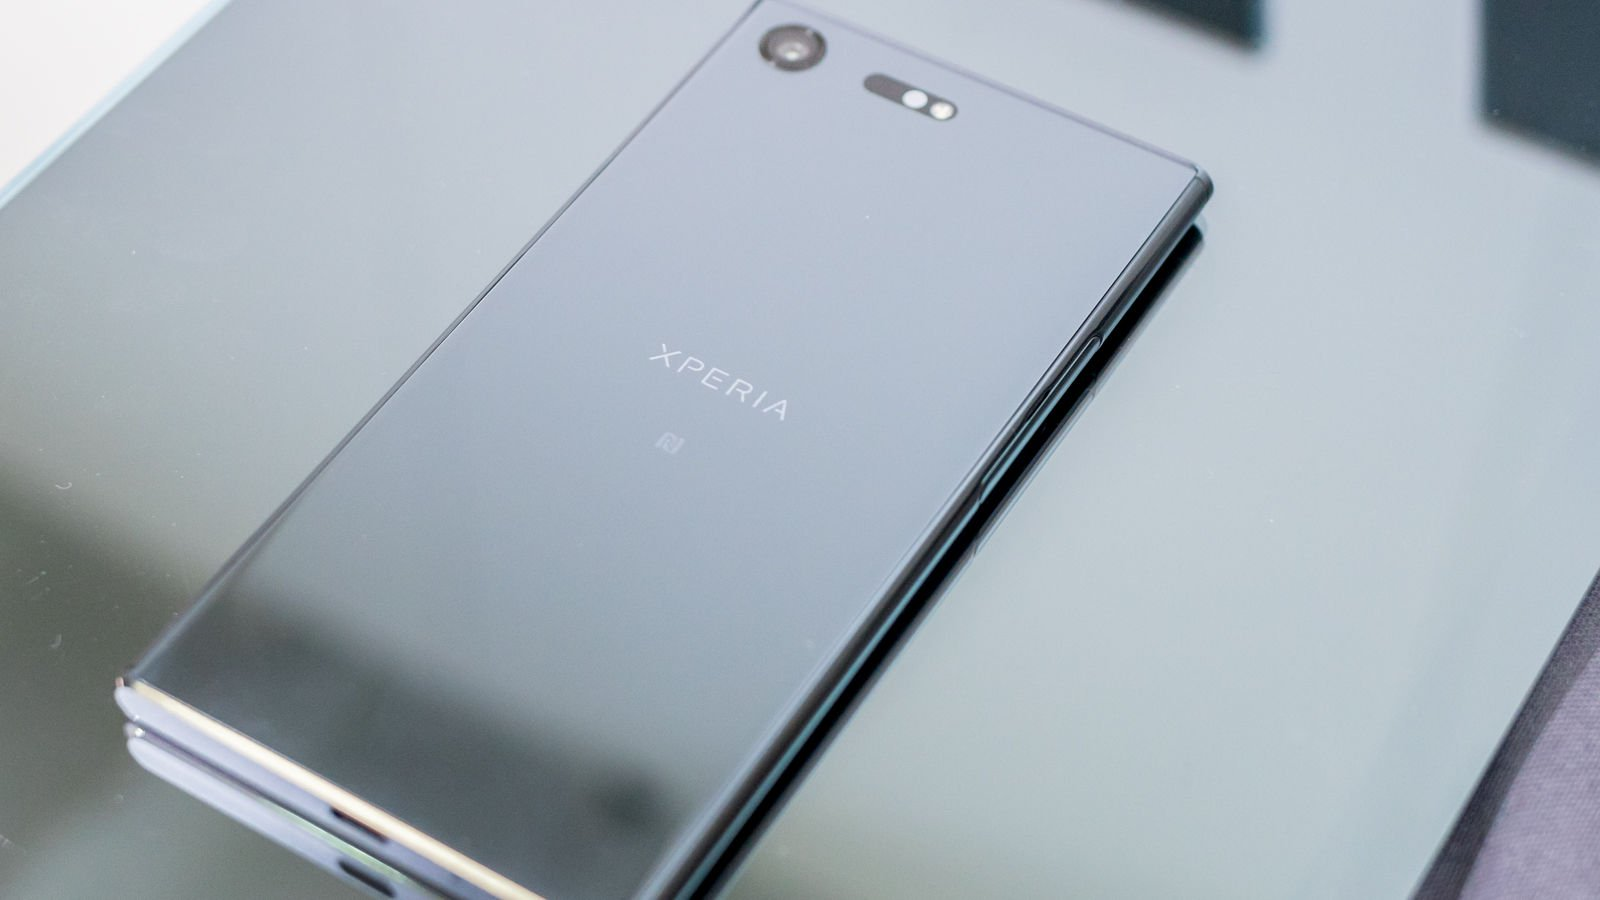 Sony Xperia XZ1: Release date, news and features